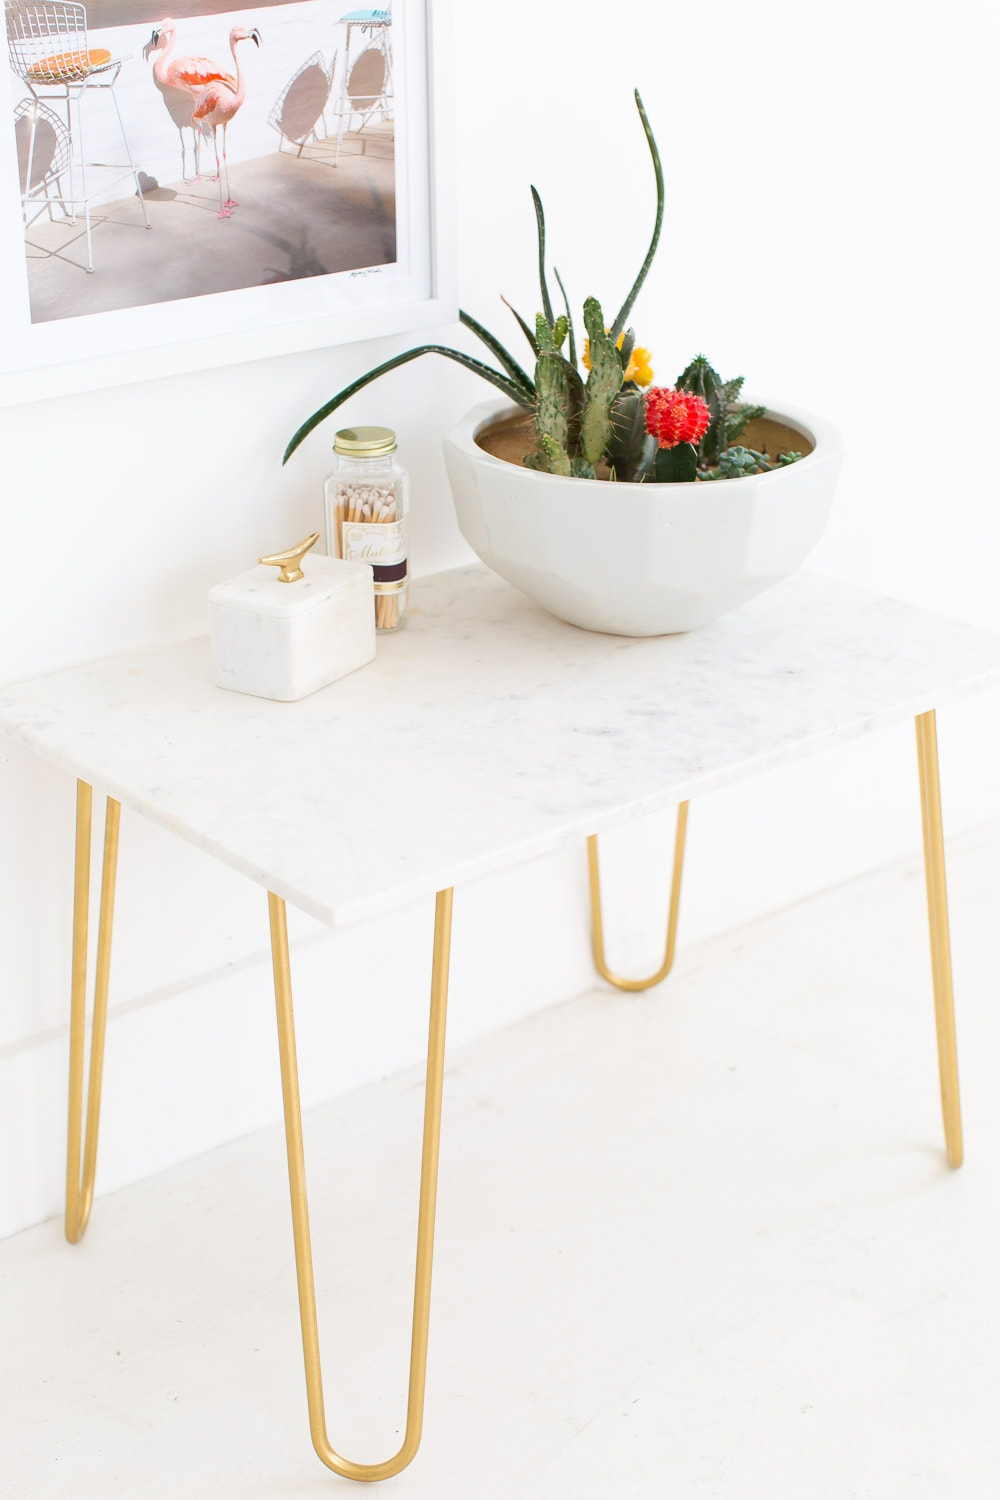 diy marble table top with gold accents sugar cloth. Black Bedroom Furniture Sets. Home Design Ideas